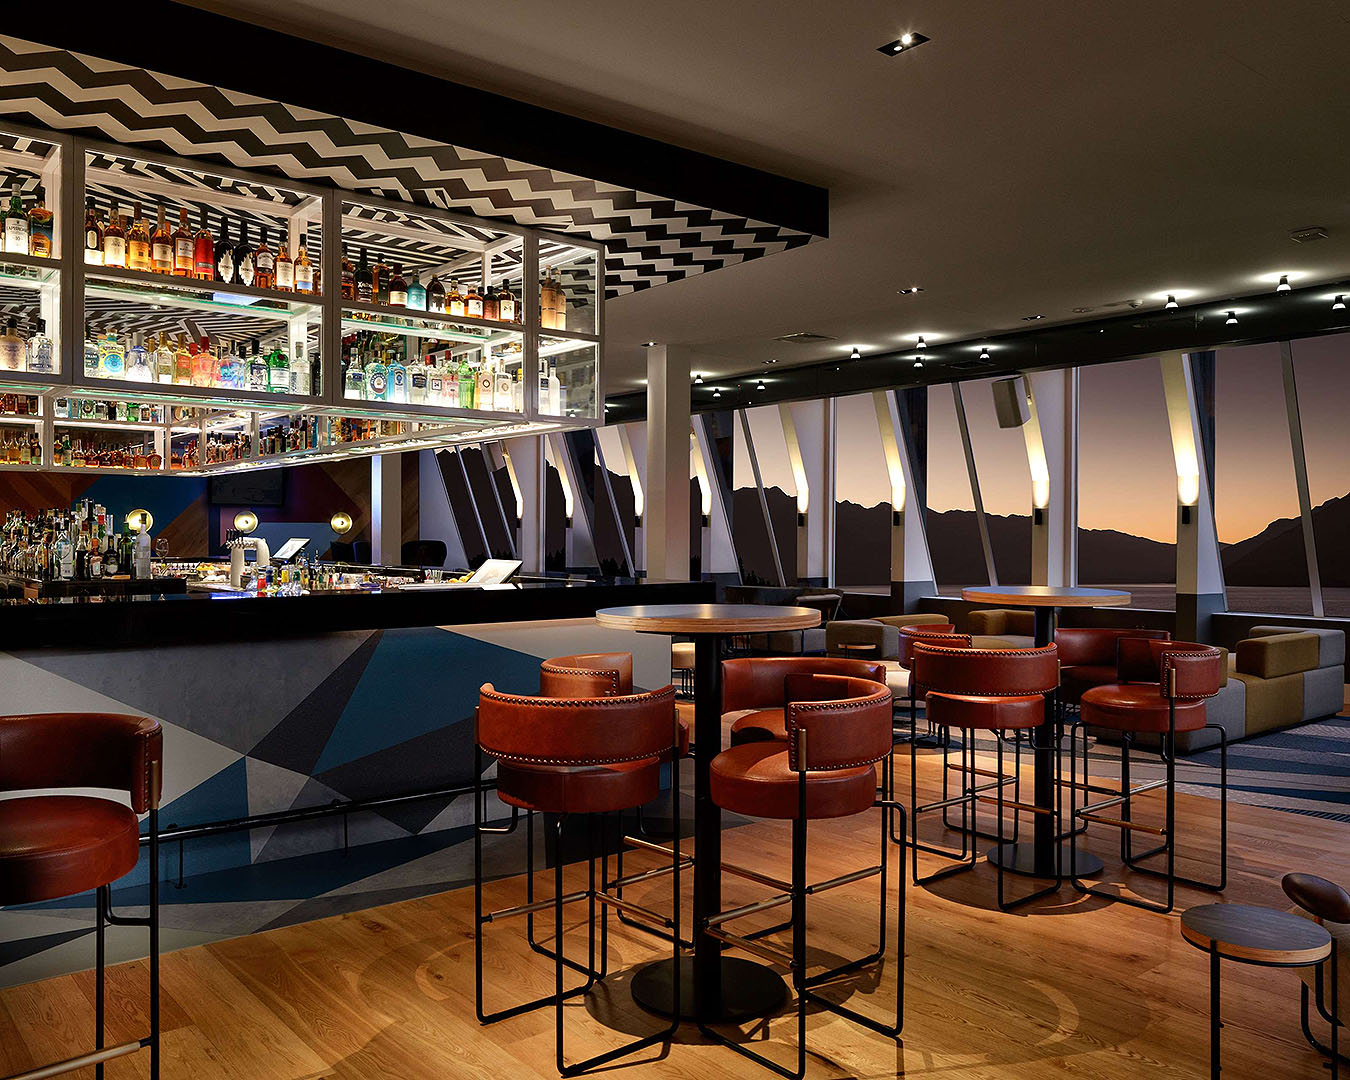 The gorgeous bar at the QT hotel in Queenstown.